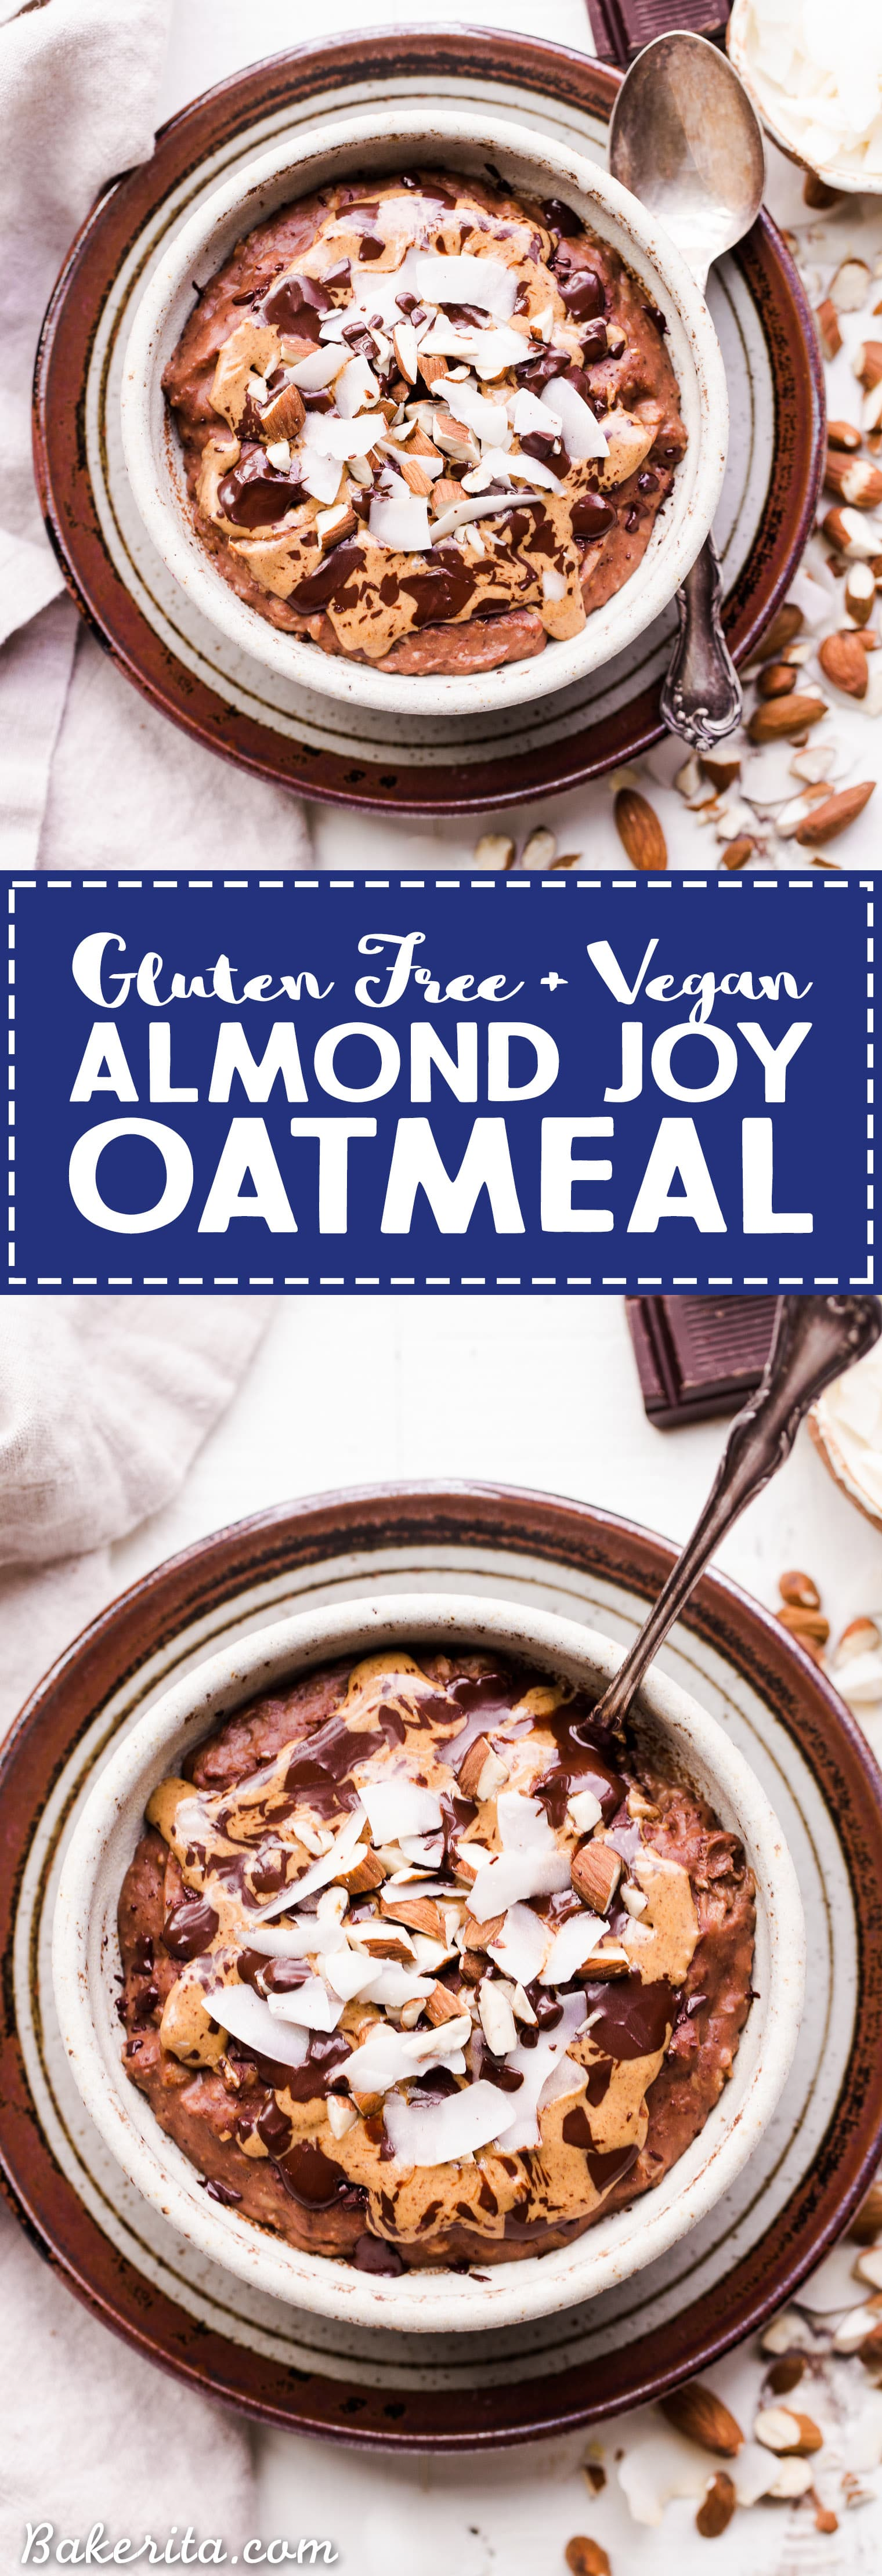 This Almond Joy Oatmeal is a creamy chocolate oatmeal that's sweetened with just a ripe banana and topped with coconut, almonds, and more chocolate! This hearty breakfast is decadent, filling, and you can enjoy it guilt free - unlike its candy bar equivalent!